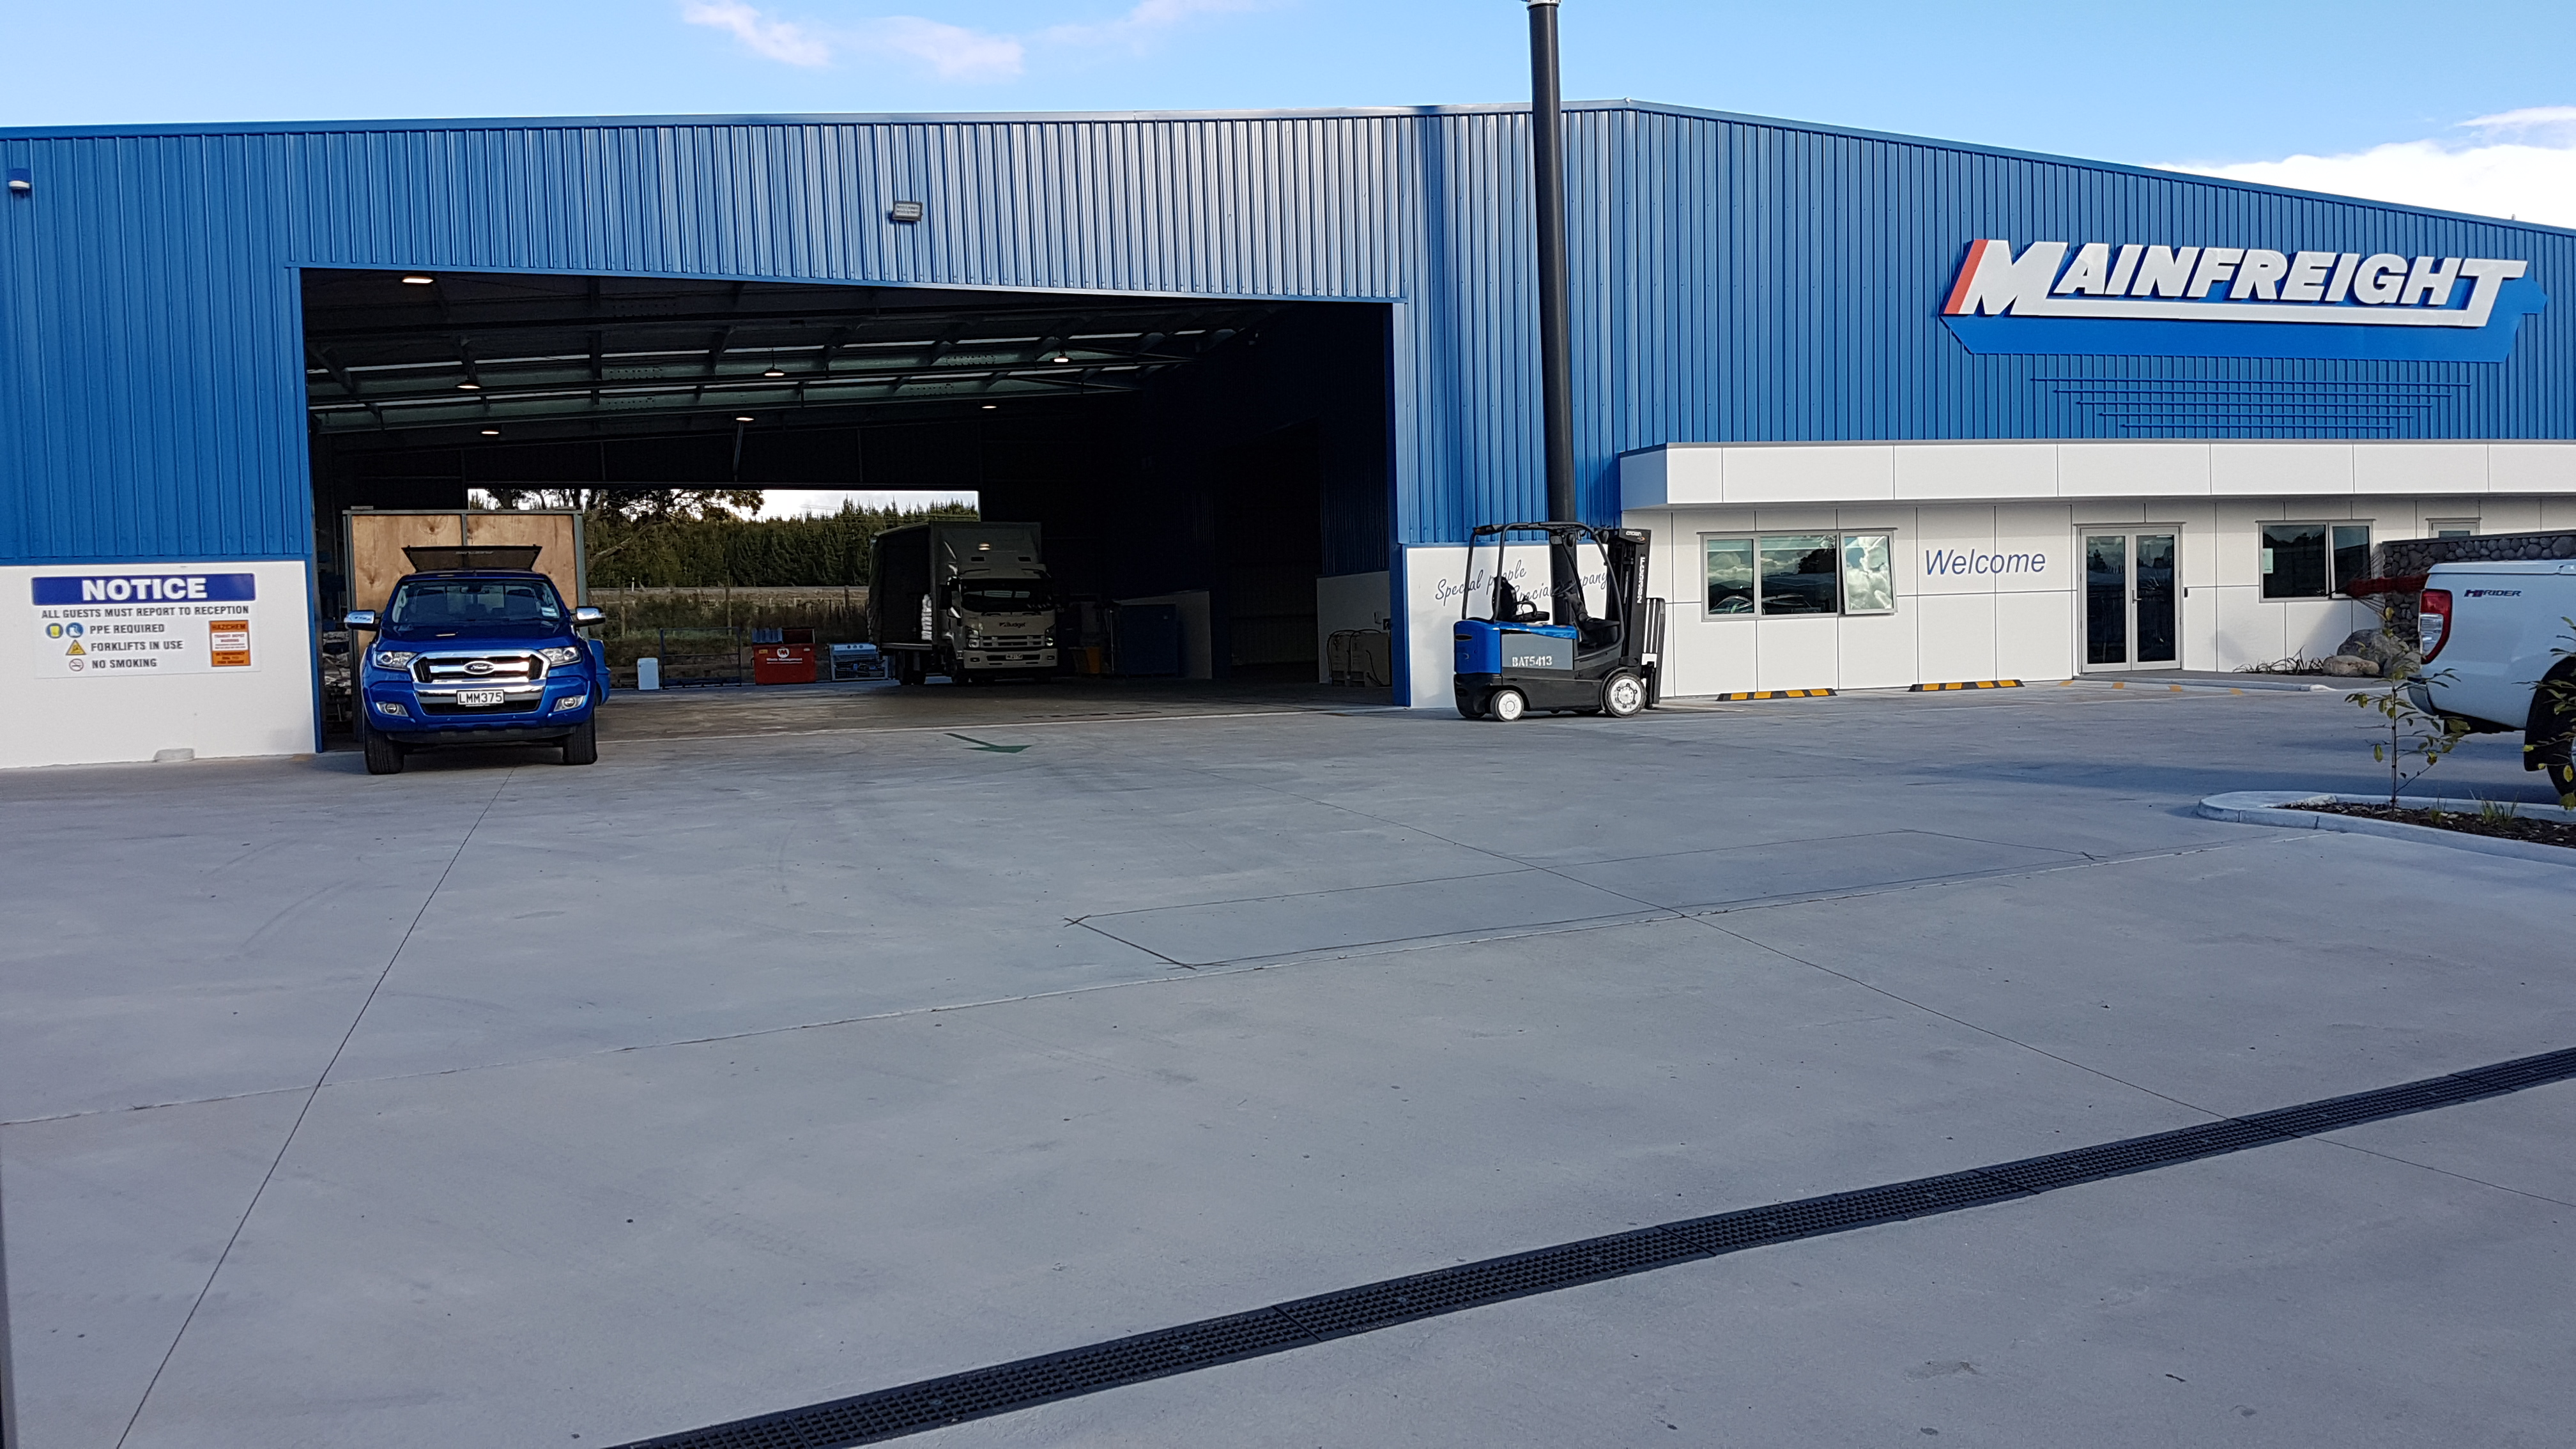 A freight yard that uses a super strong fibre concrete loading bay for very heavy traffic